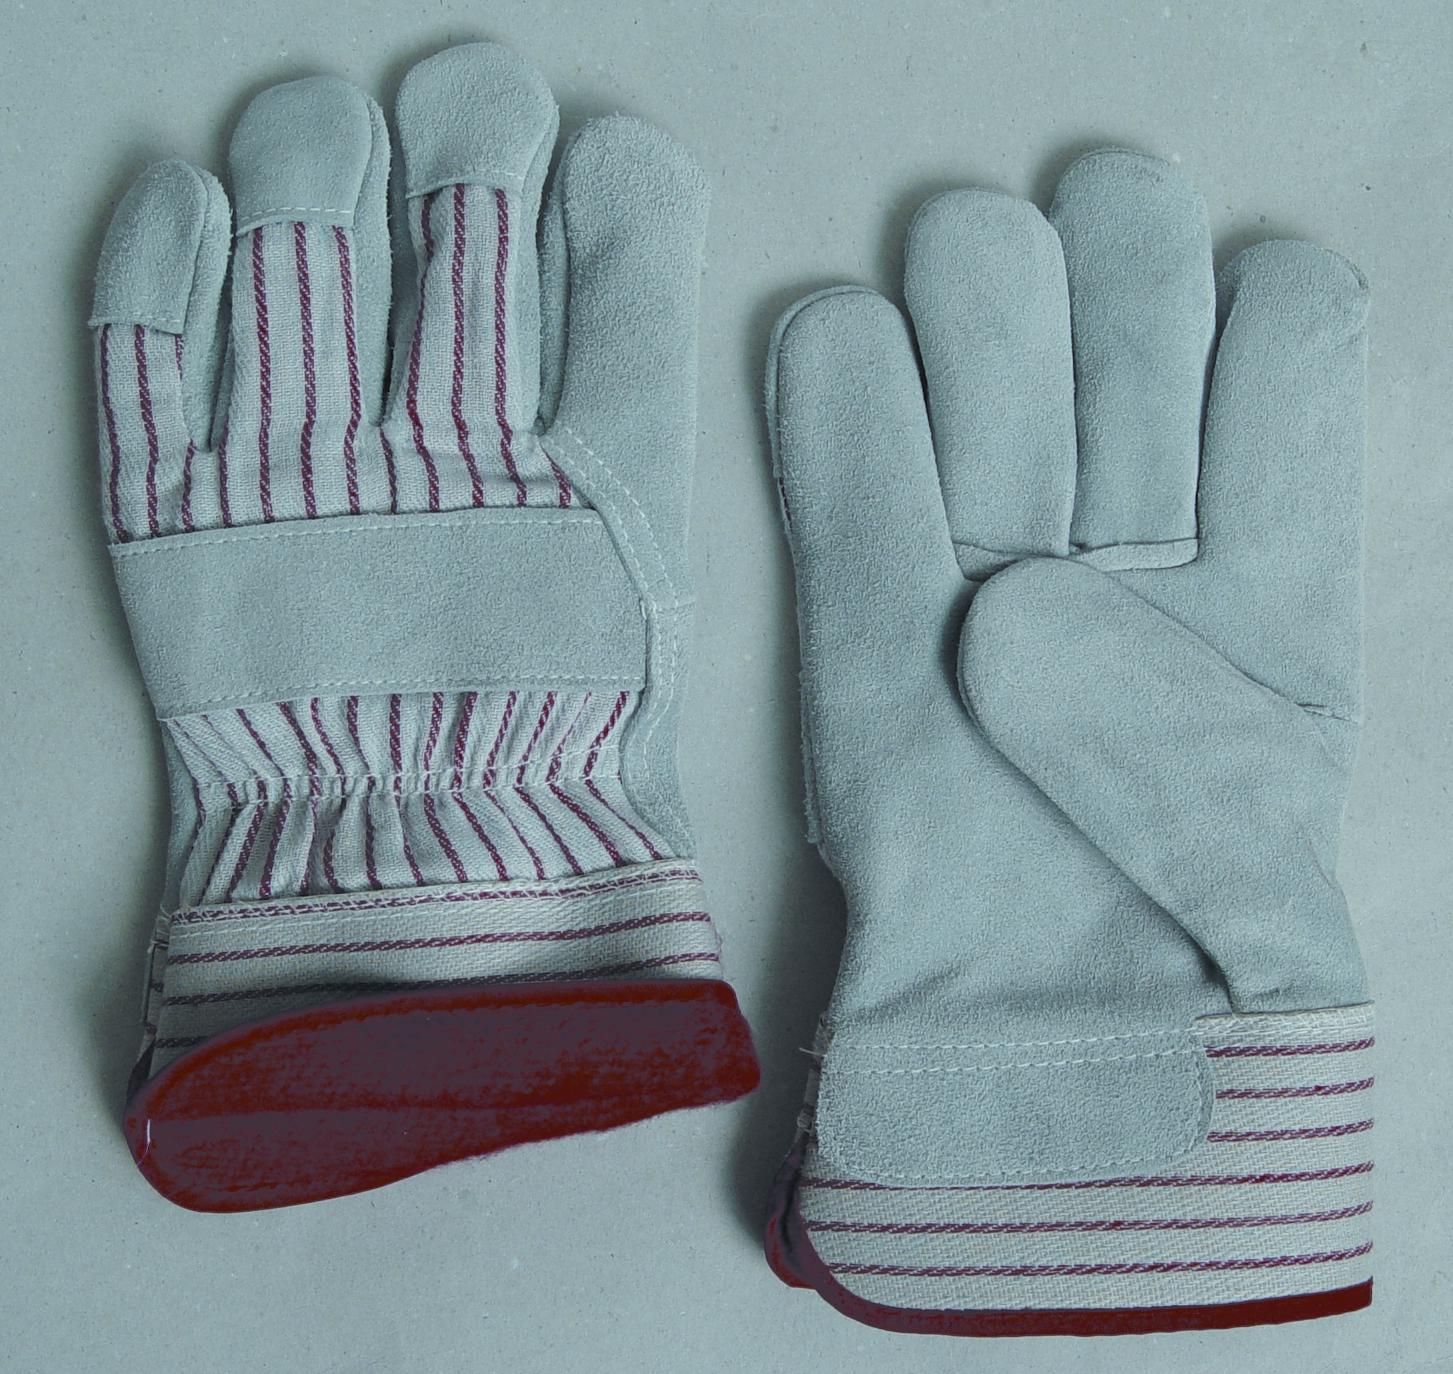 Leather work gloves with wool lining -  603fl Red Fleece Foam Lined Leather Work Gloves Select Shoulder Leather